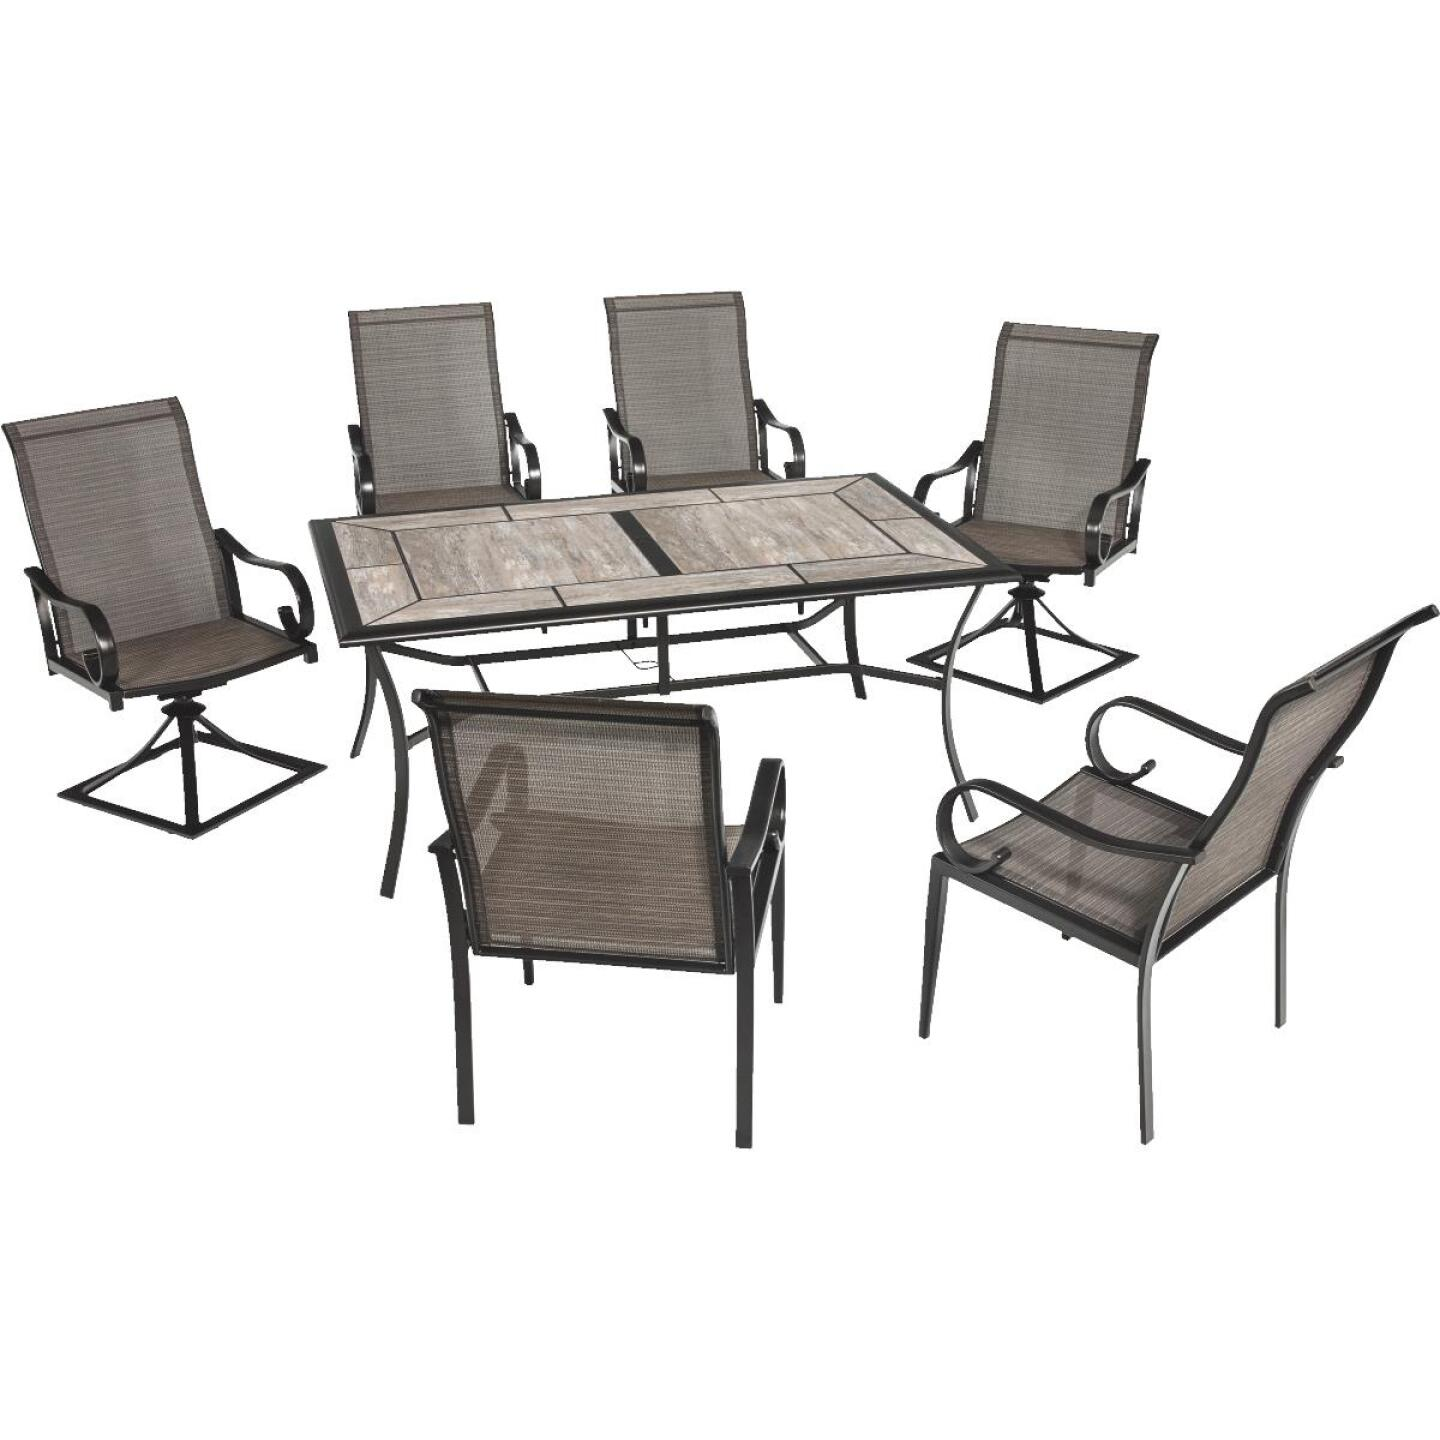 Outdoor Expressions Berkshire 7-Piece Dining Set Image 339